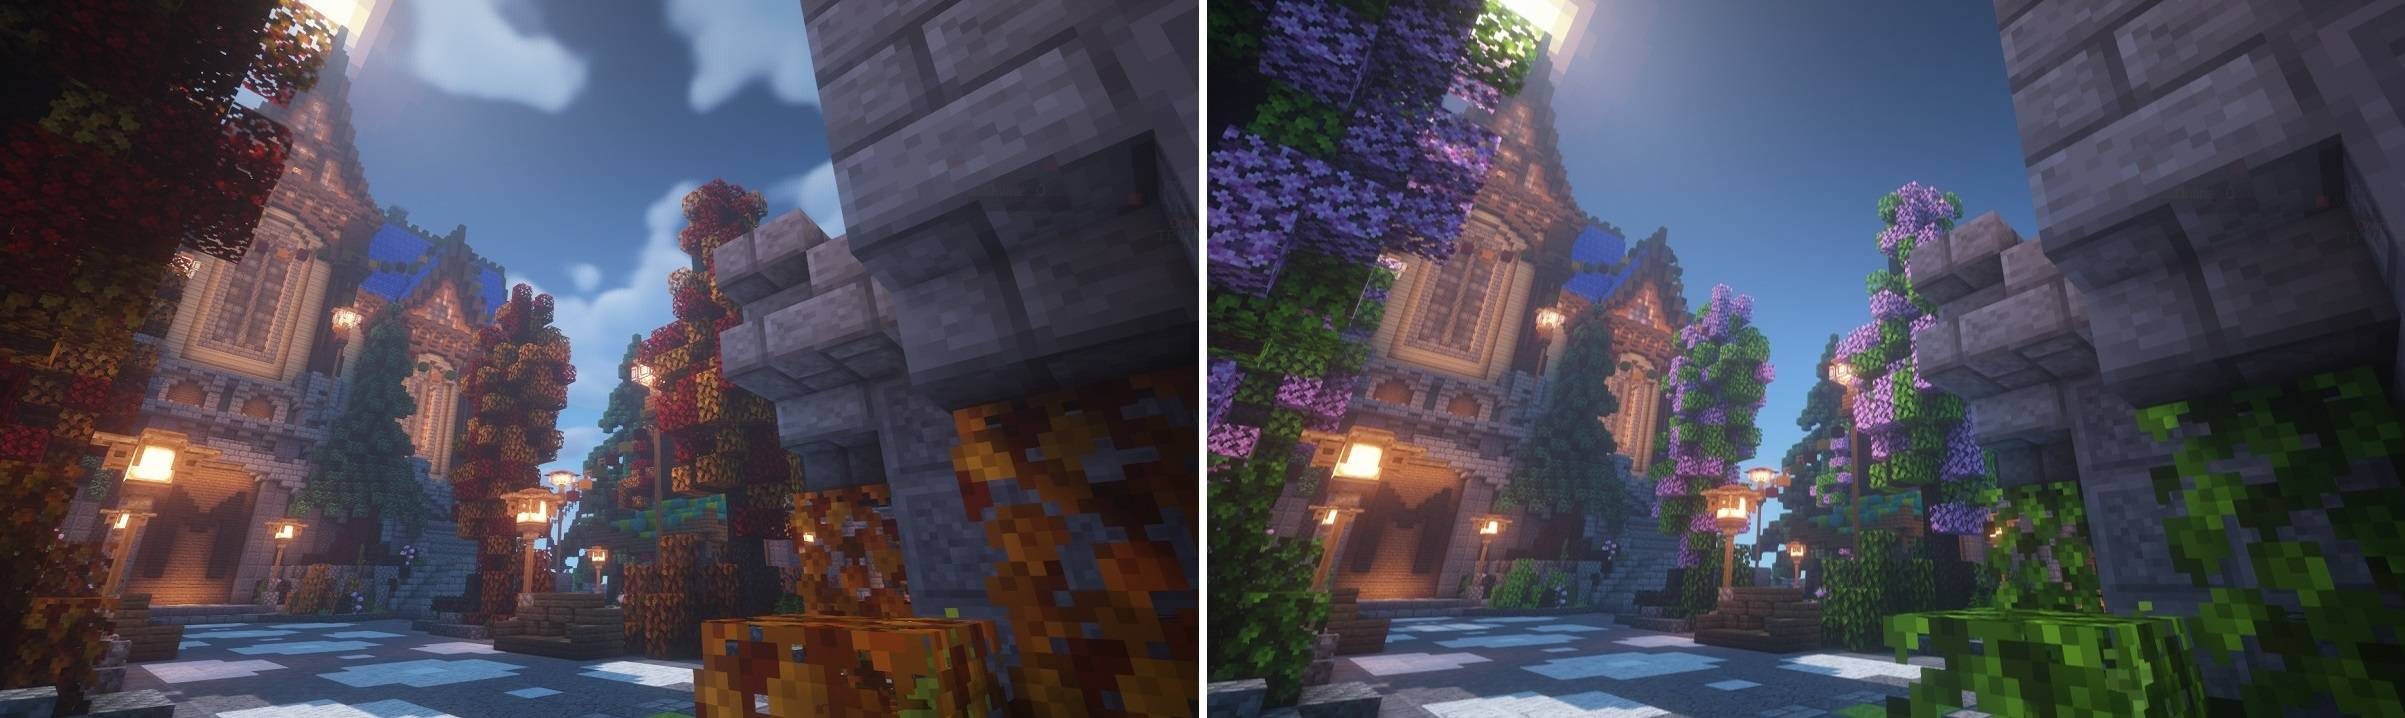 jicklus resource pack 1.14.4 minecraft wiosna jesien